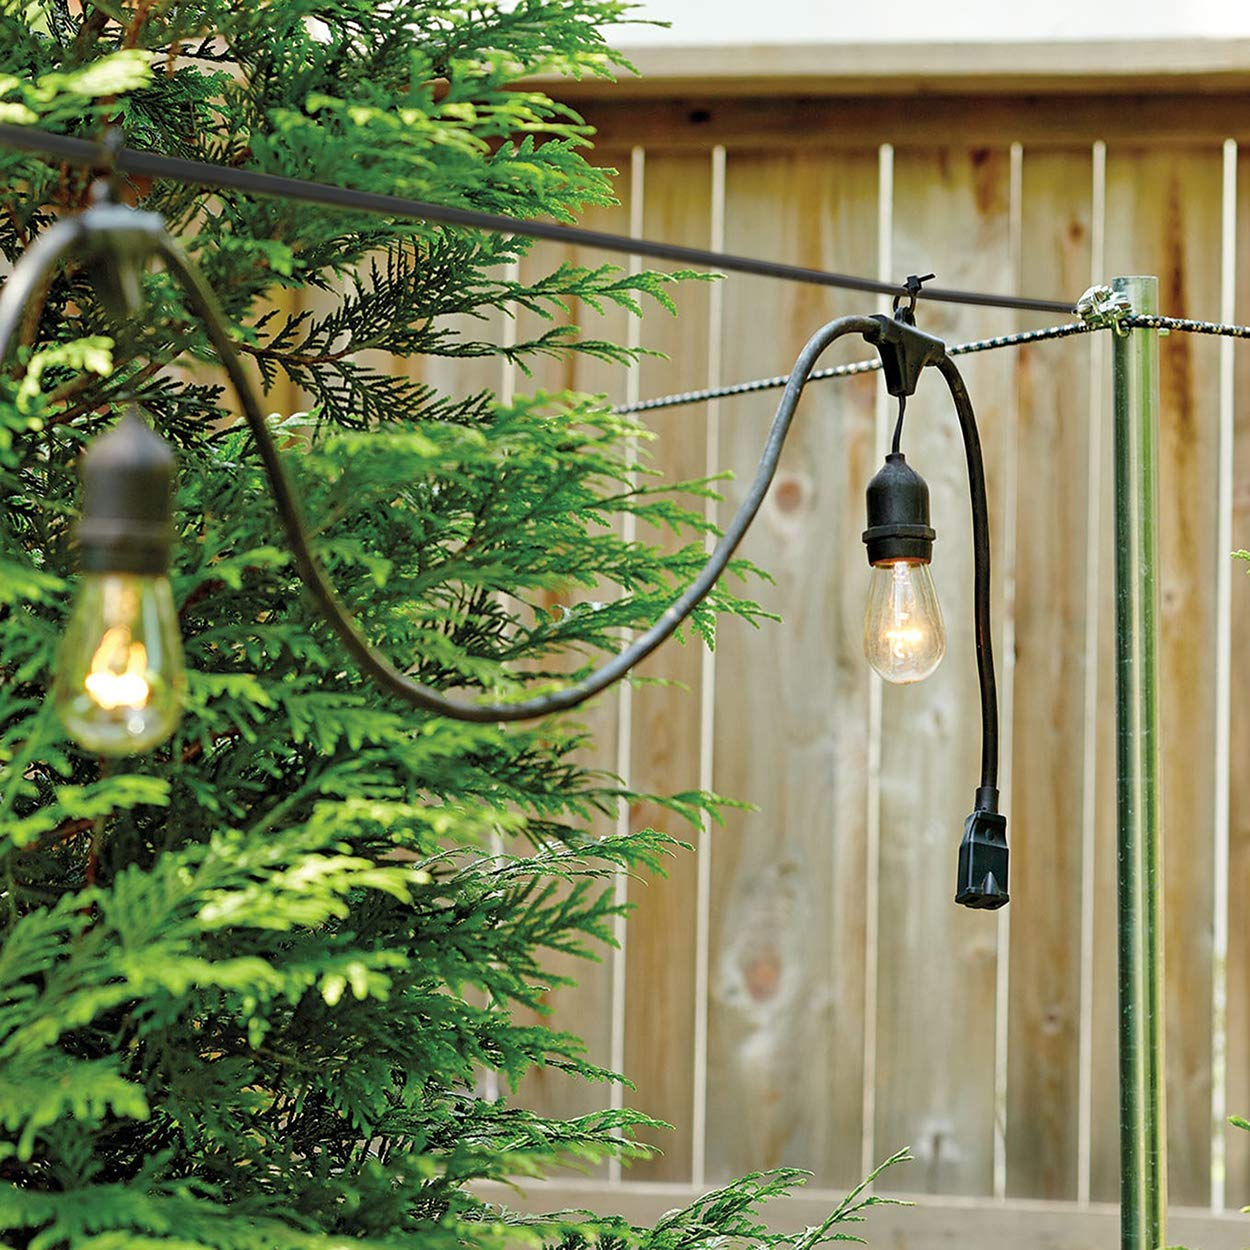 COCONUT Outdoor Lights Hanging Kit, String Lights Suspension Kit for Patio, Garden, Wedding - Stainless Steel Guide Wire Rope Cable, Turnbuckle and Hooks (100FT) by COCONUT